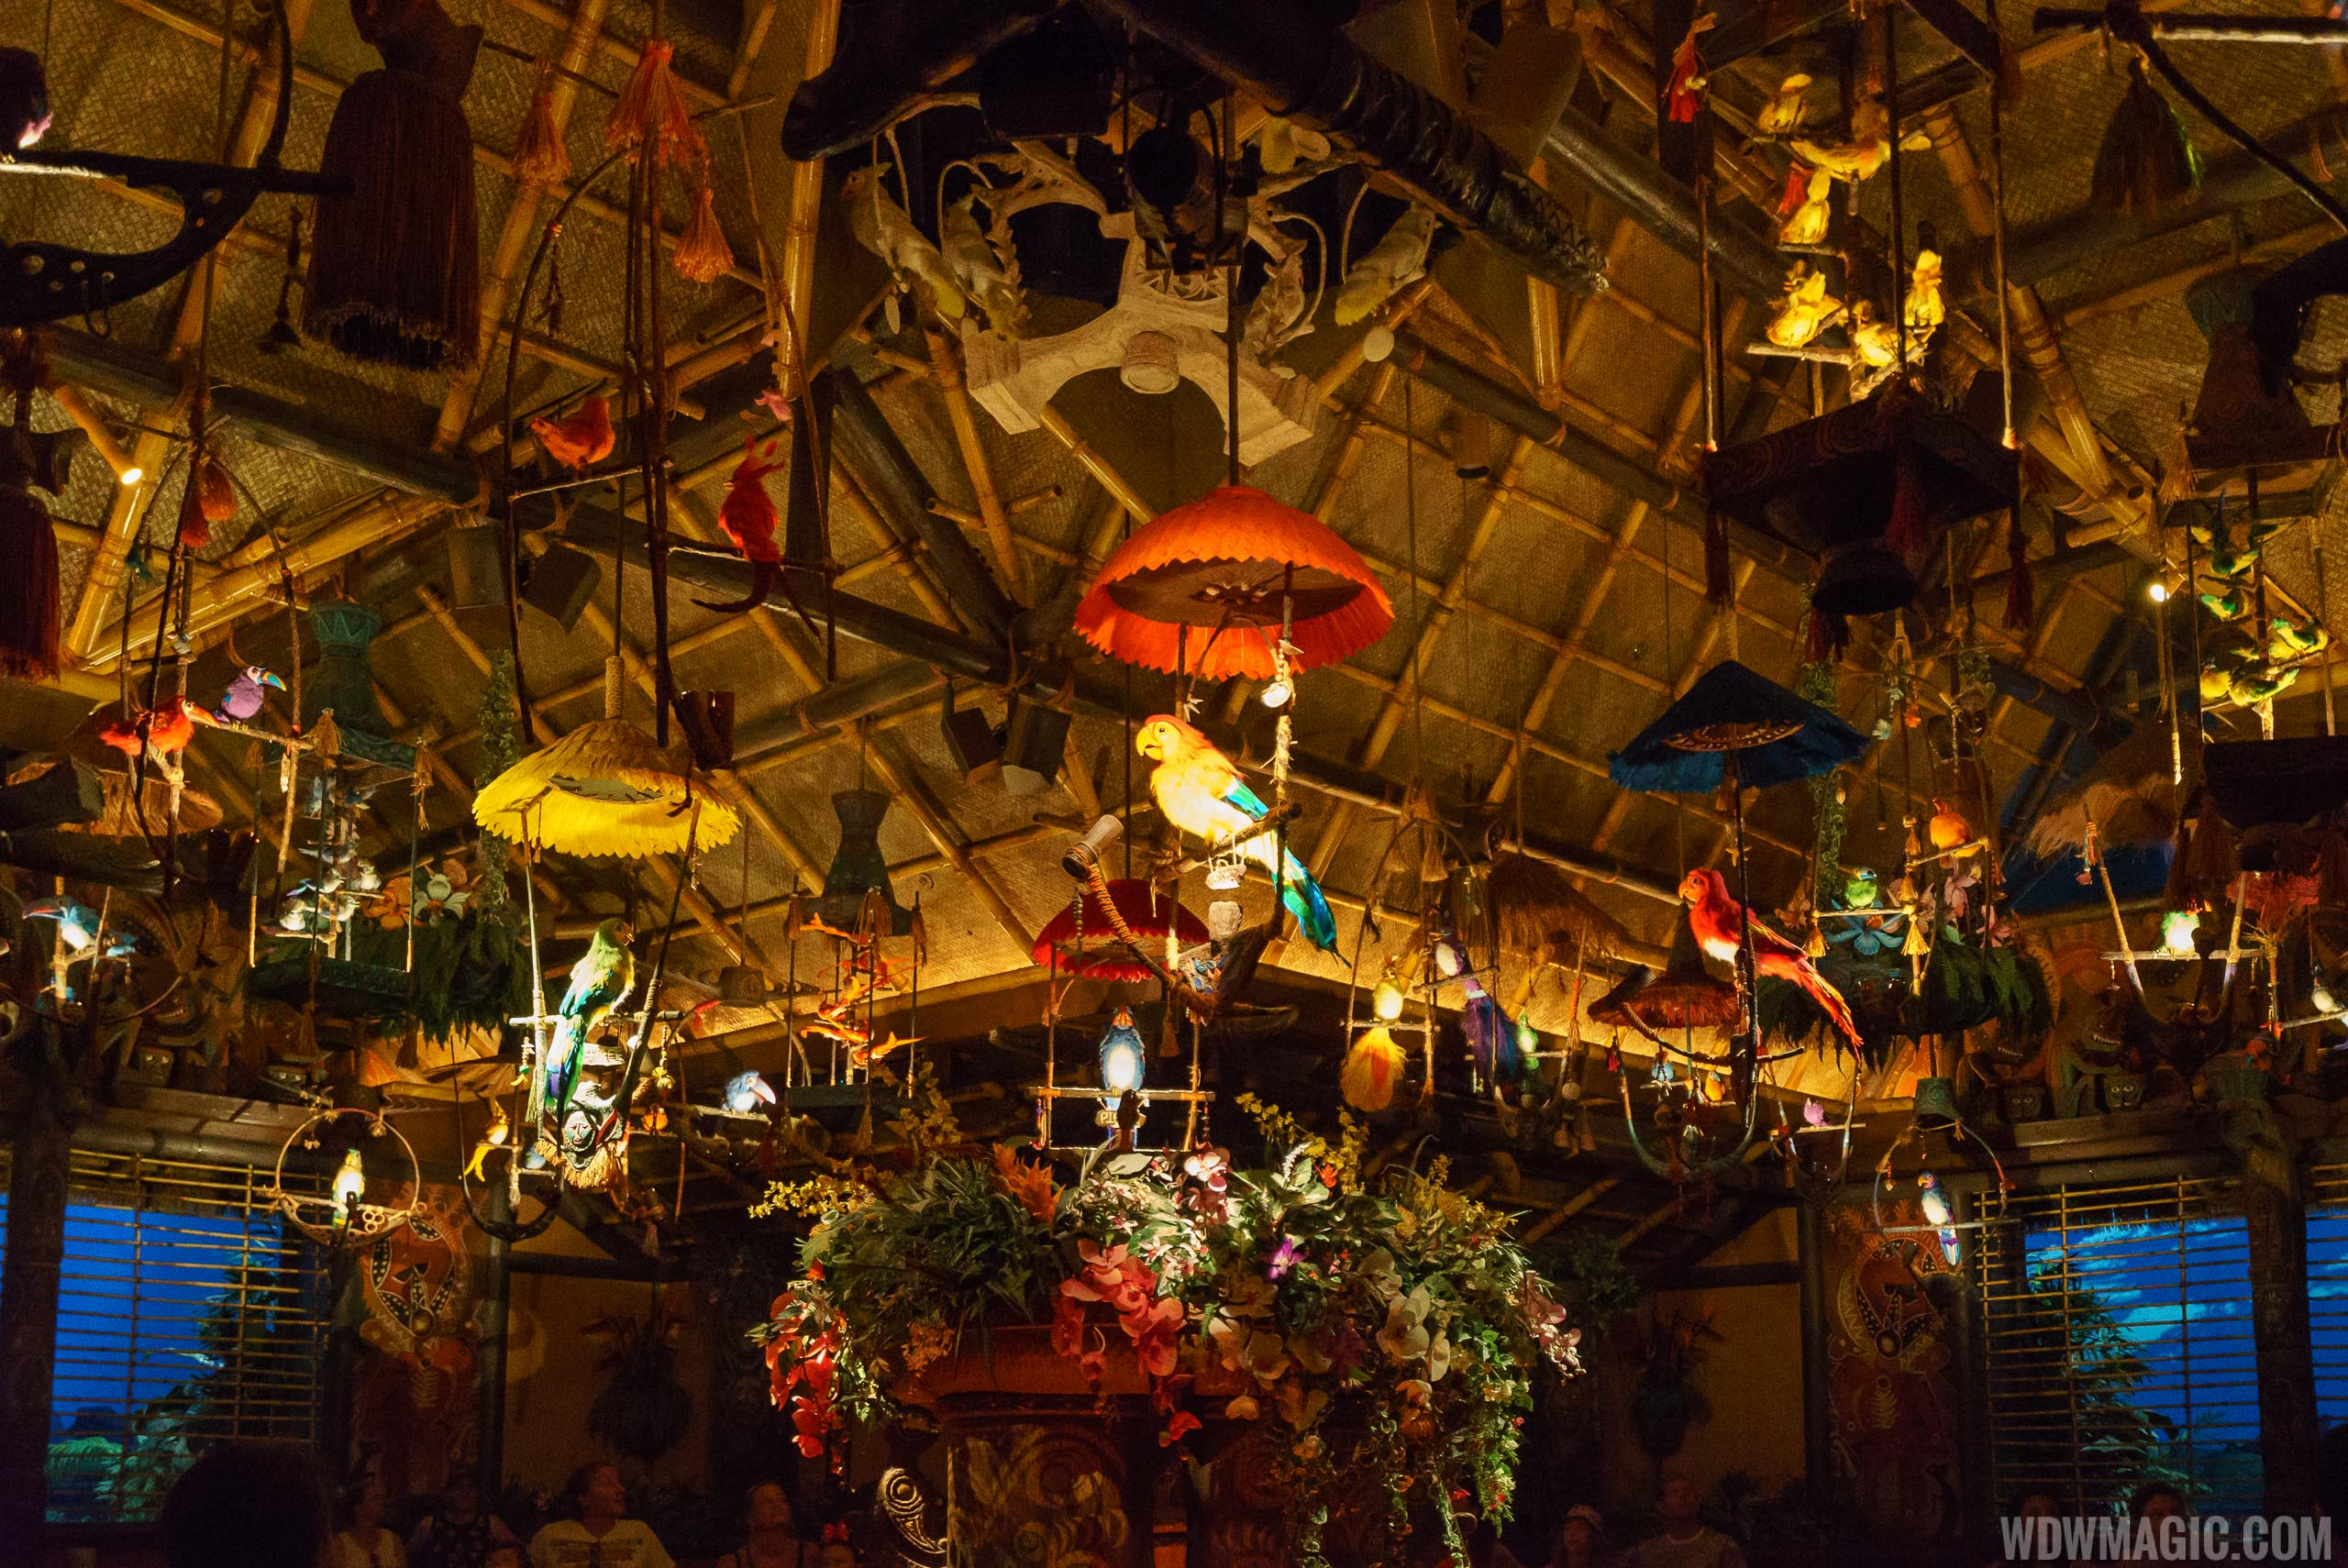 Walt Disney's Enchanted Tiki Room show